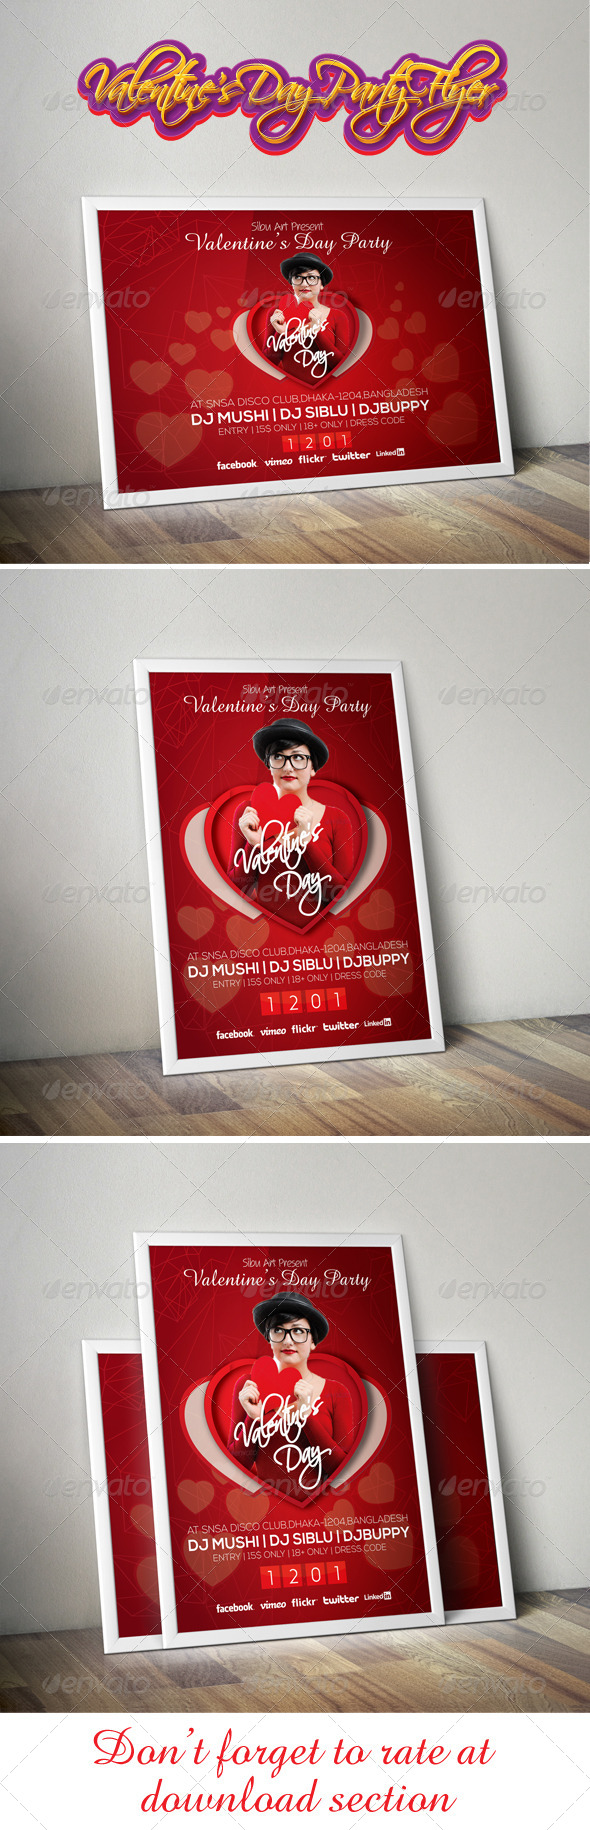 GraphicRiver Valentine s Day Party Flyer 6582697